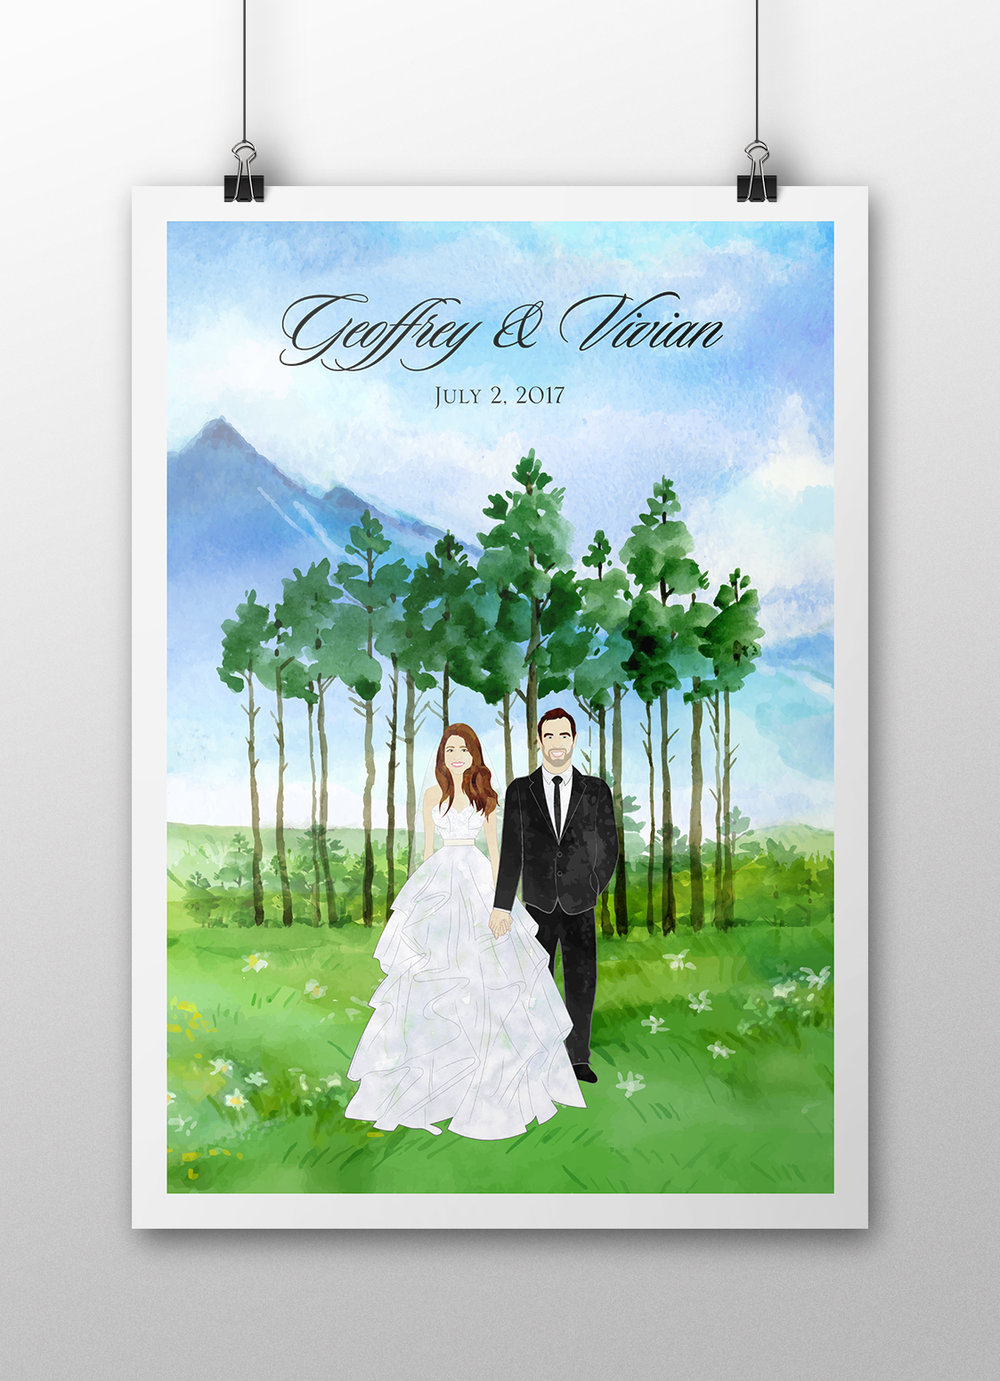 WEDDING GIFT DESIGN